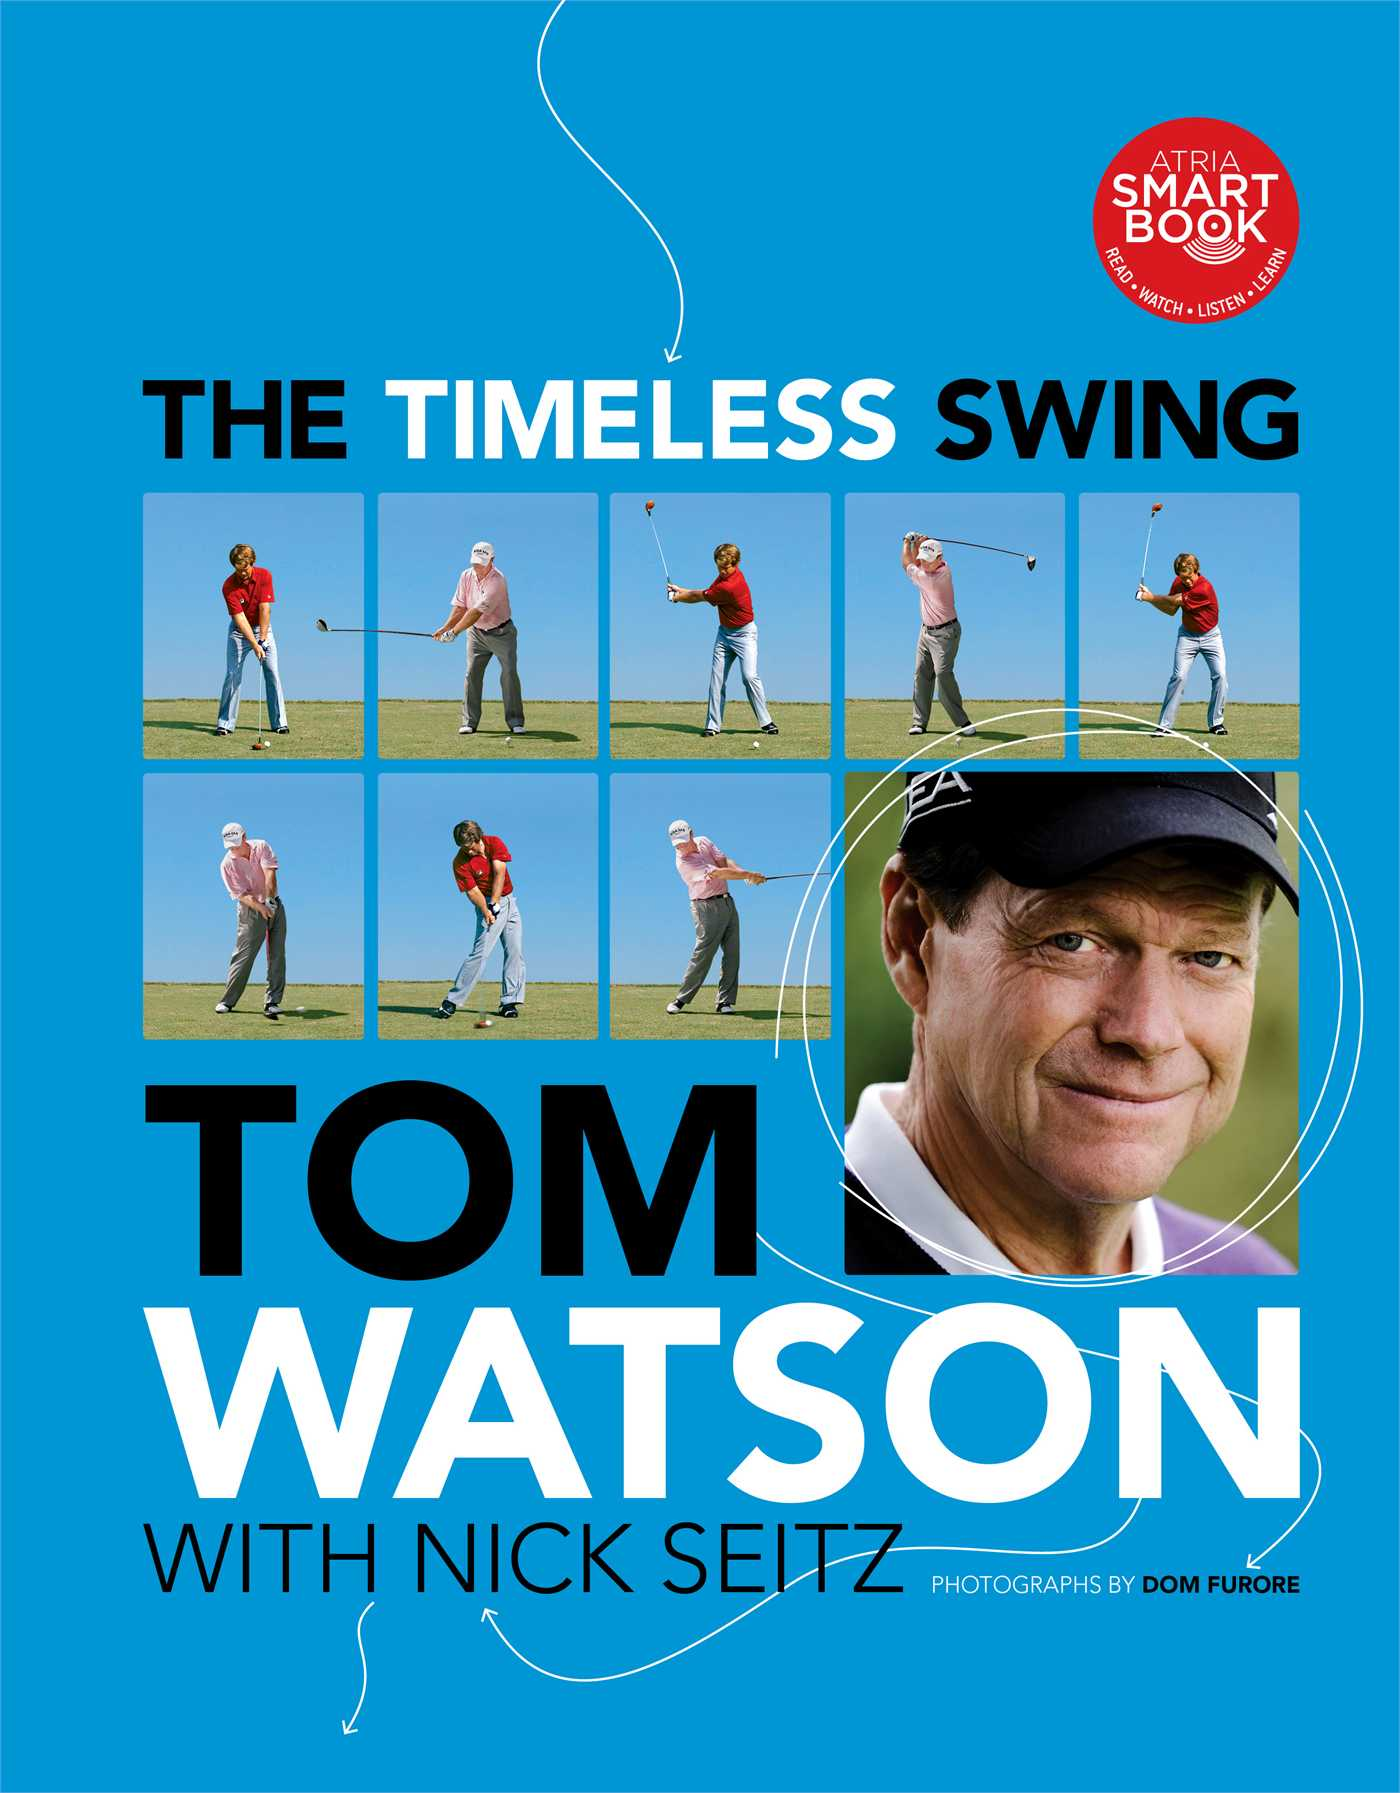 Timeless-swing-9781439194836_hr